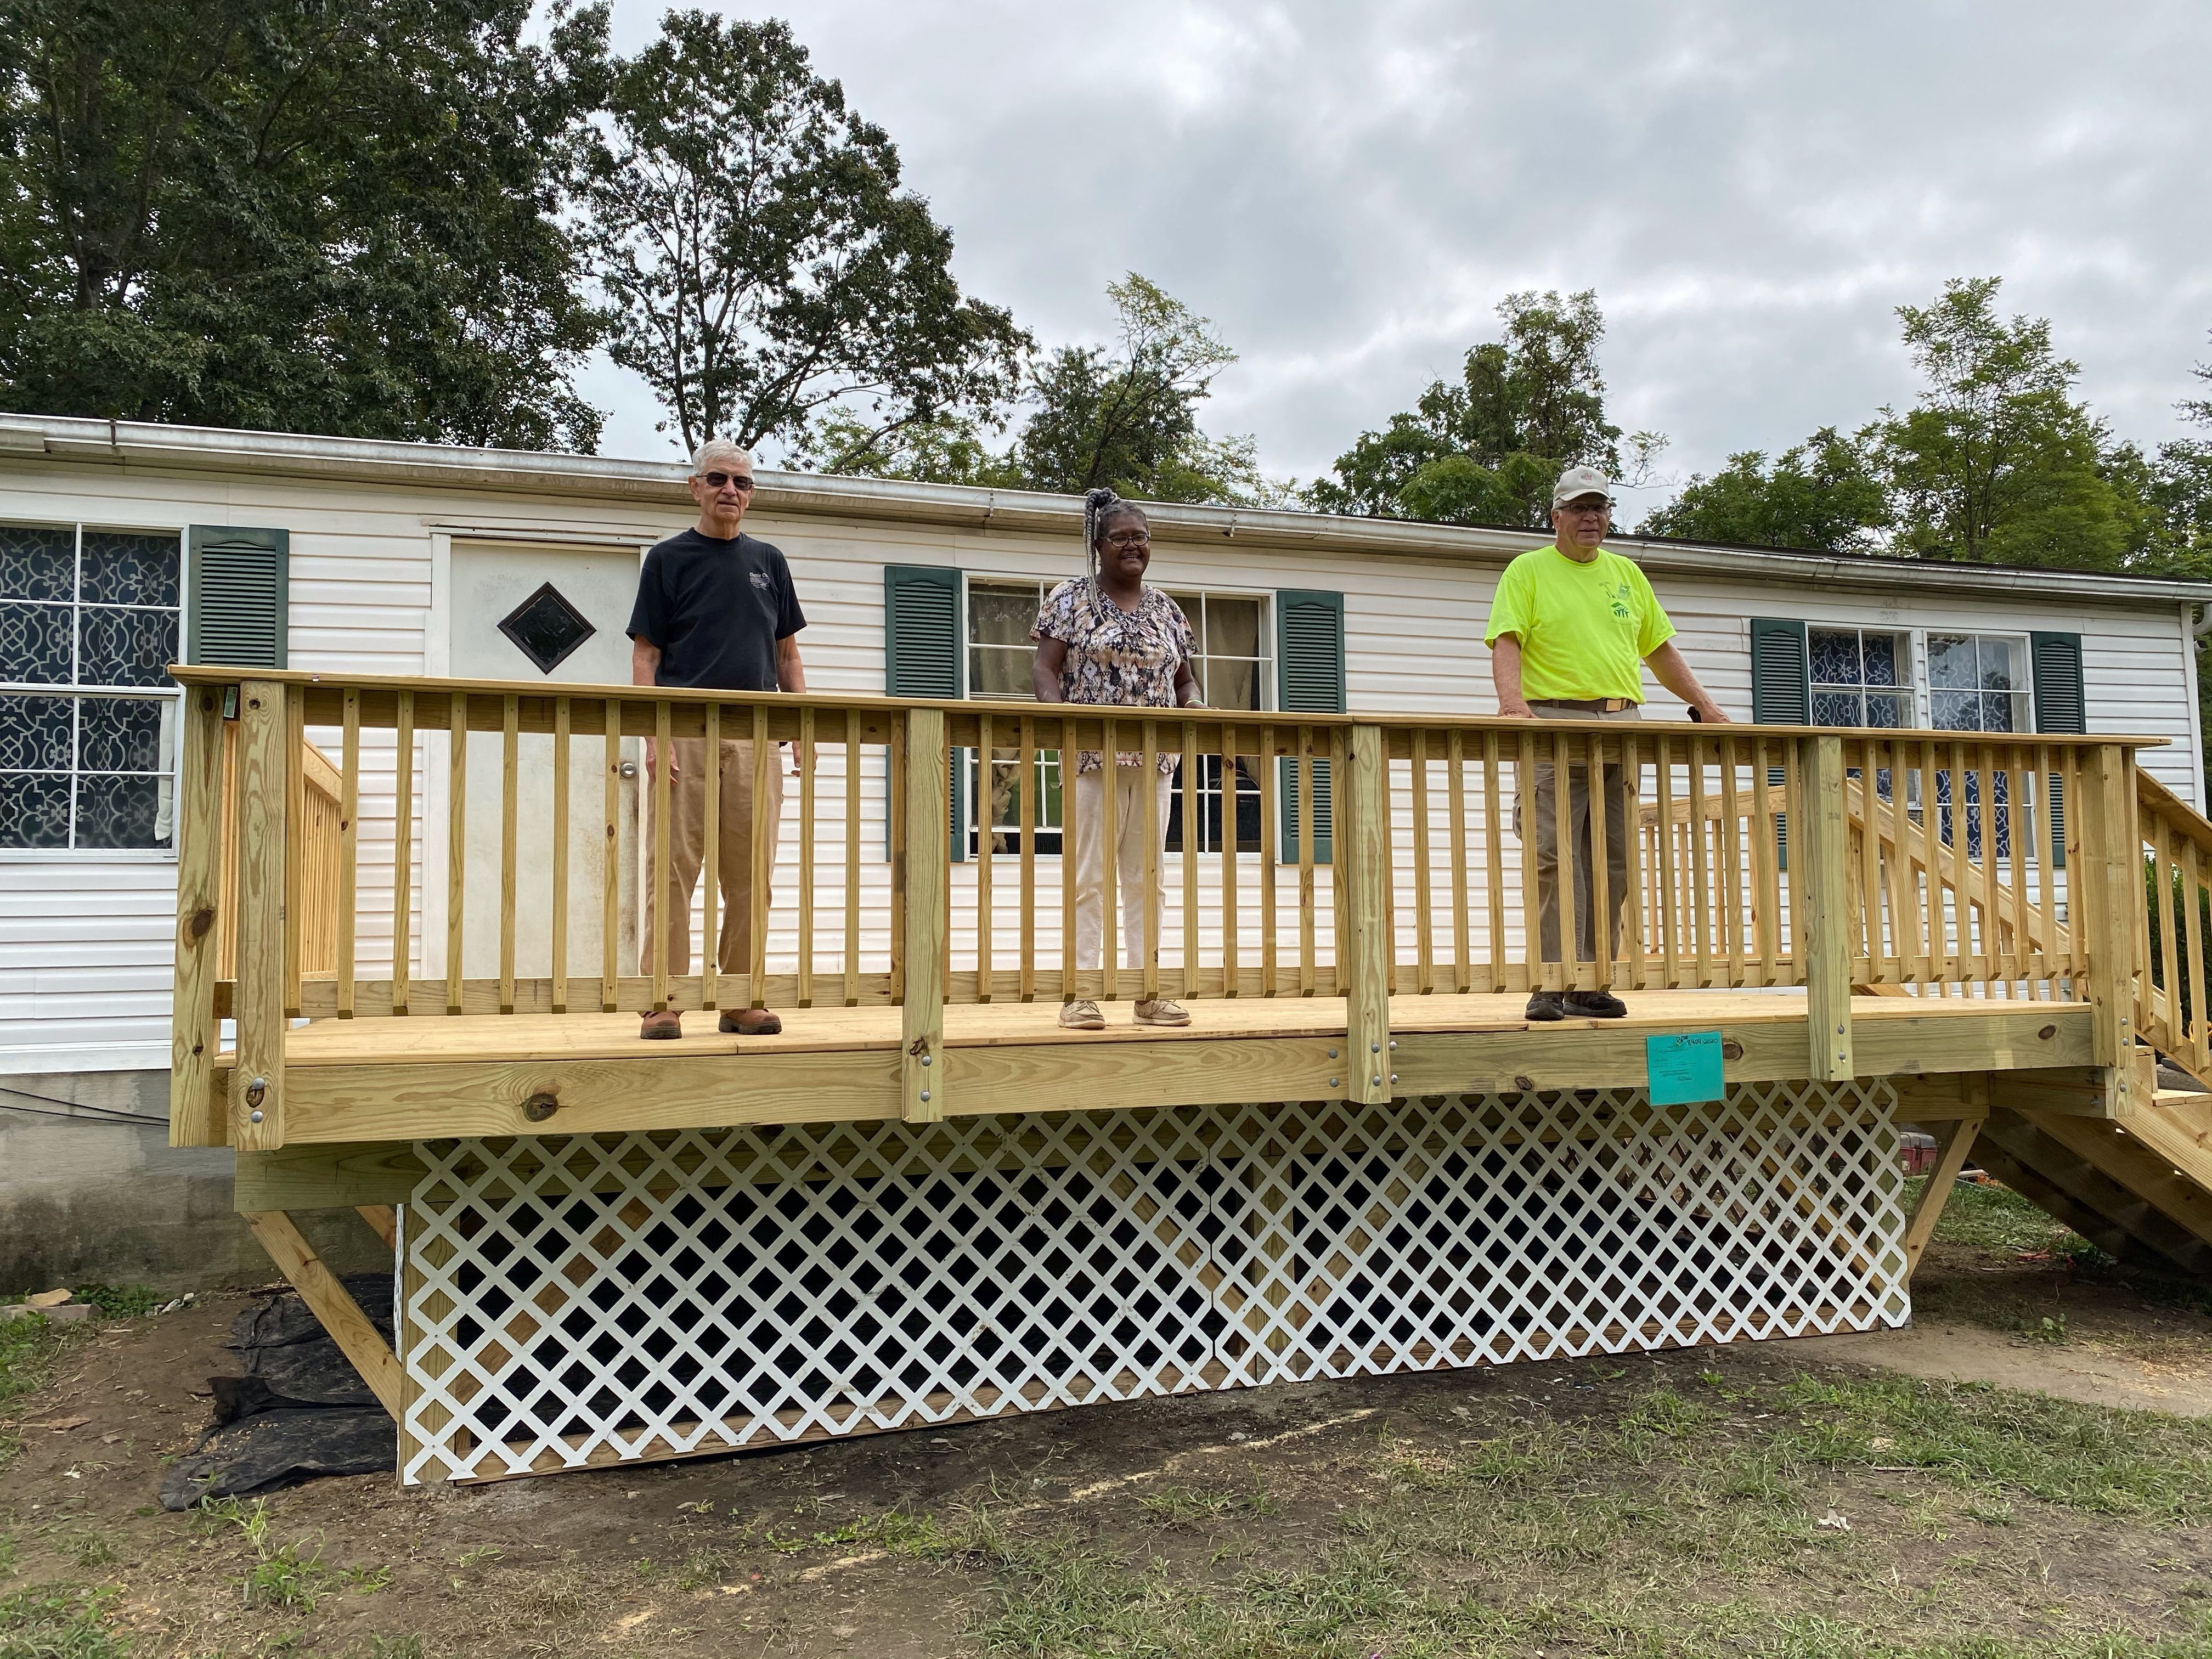 Three people standing on a newly repaired deck.